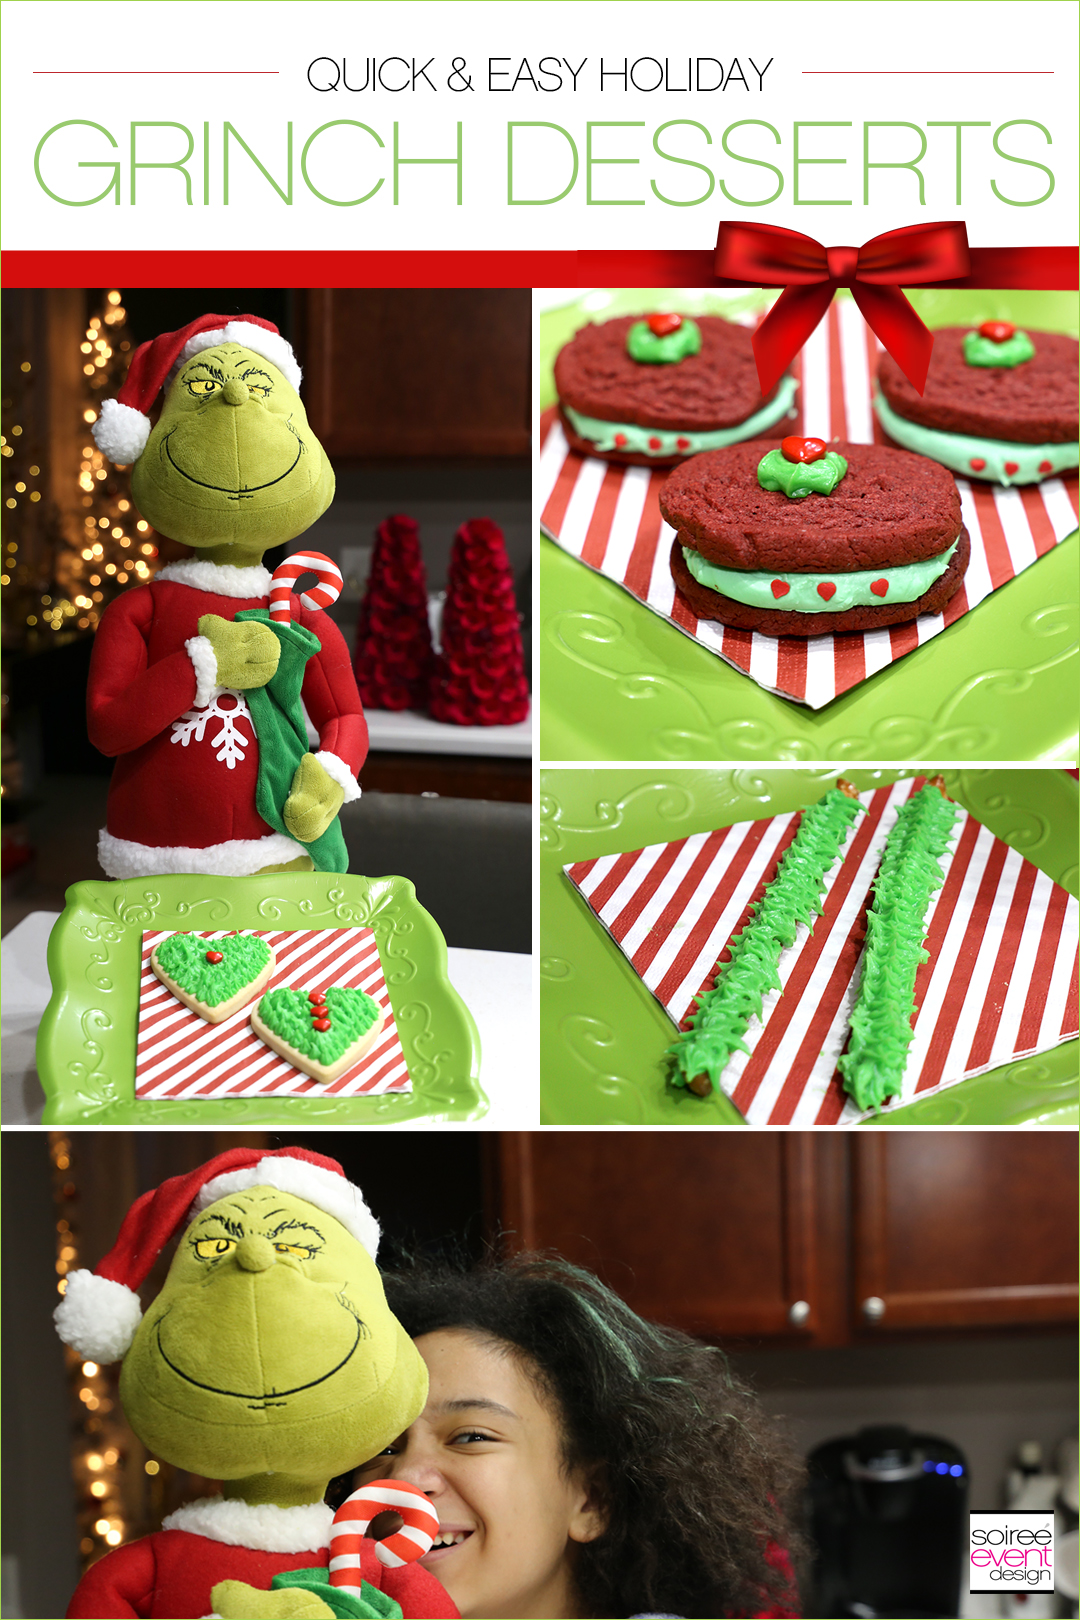 Check out these easy to make Grinch Dessert Ideas including Grinch Fingers Pretzel Rods, Grinch Heart Cookies and Grinch Heart Cookie Sandwiches.